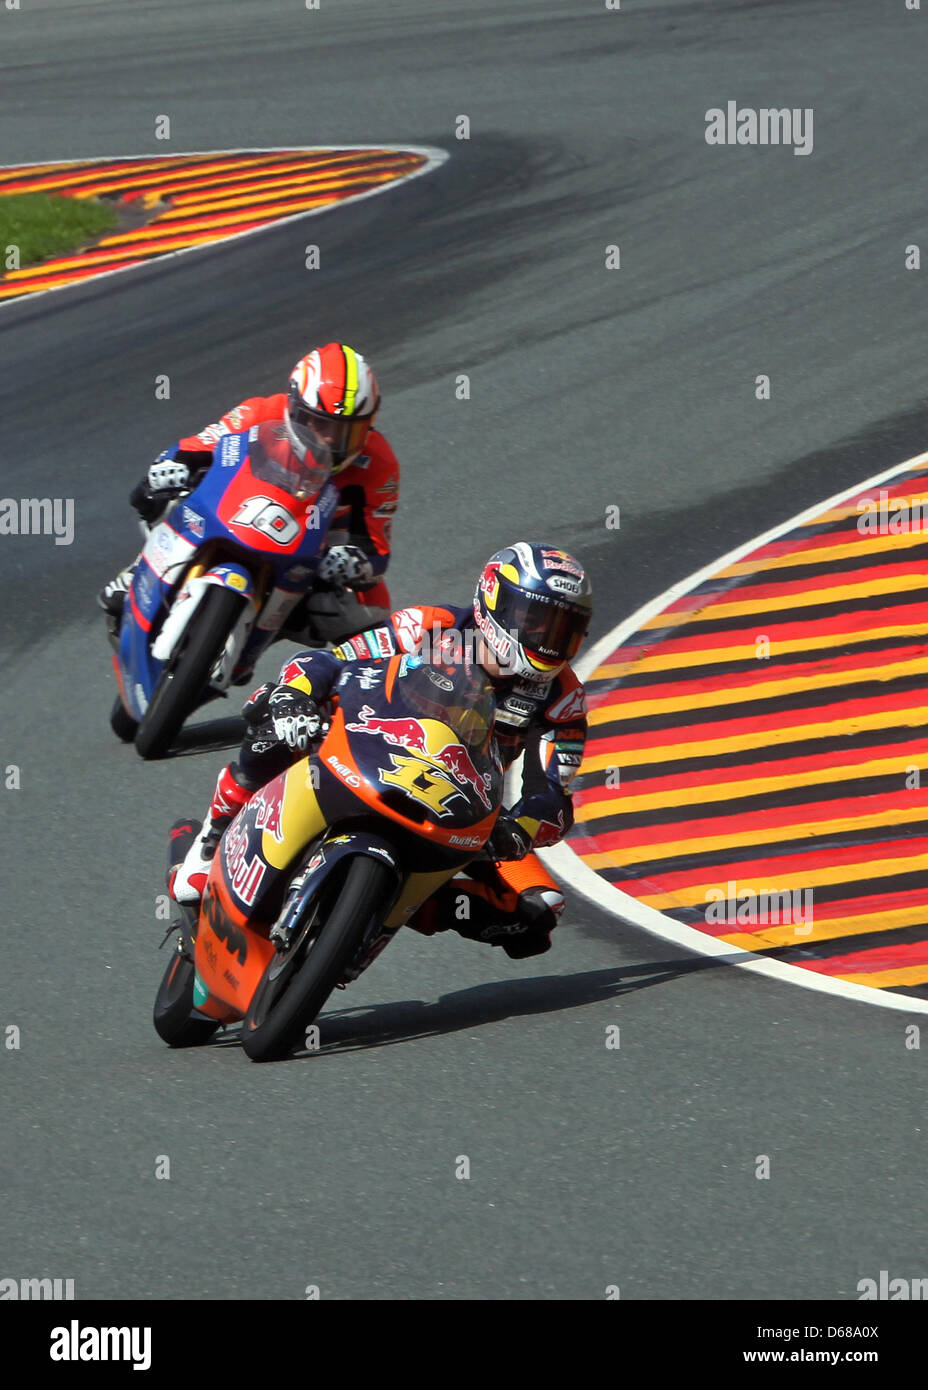 German rider Sandro Cortese of Team Red Bull KTM leads the Moto3 race ahead of French rider Alexis Masbou of Team - Stock Image